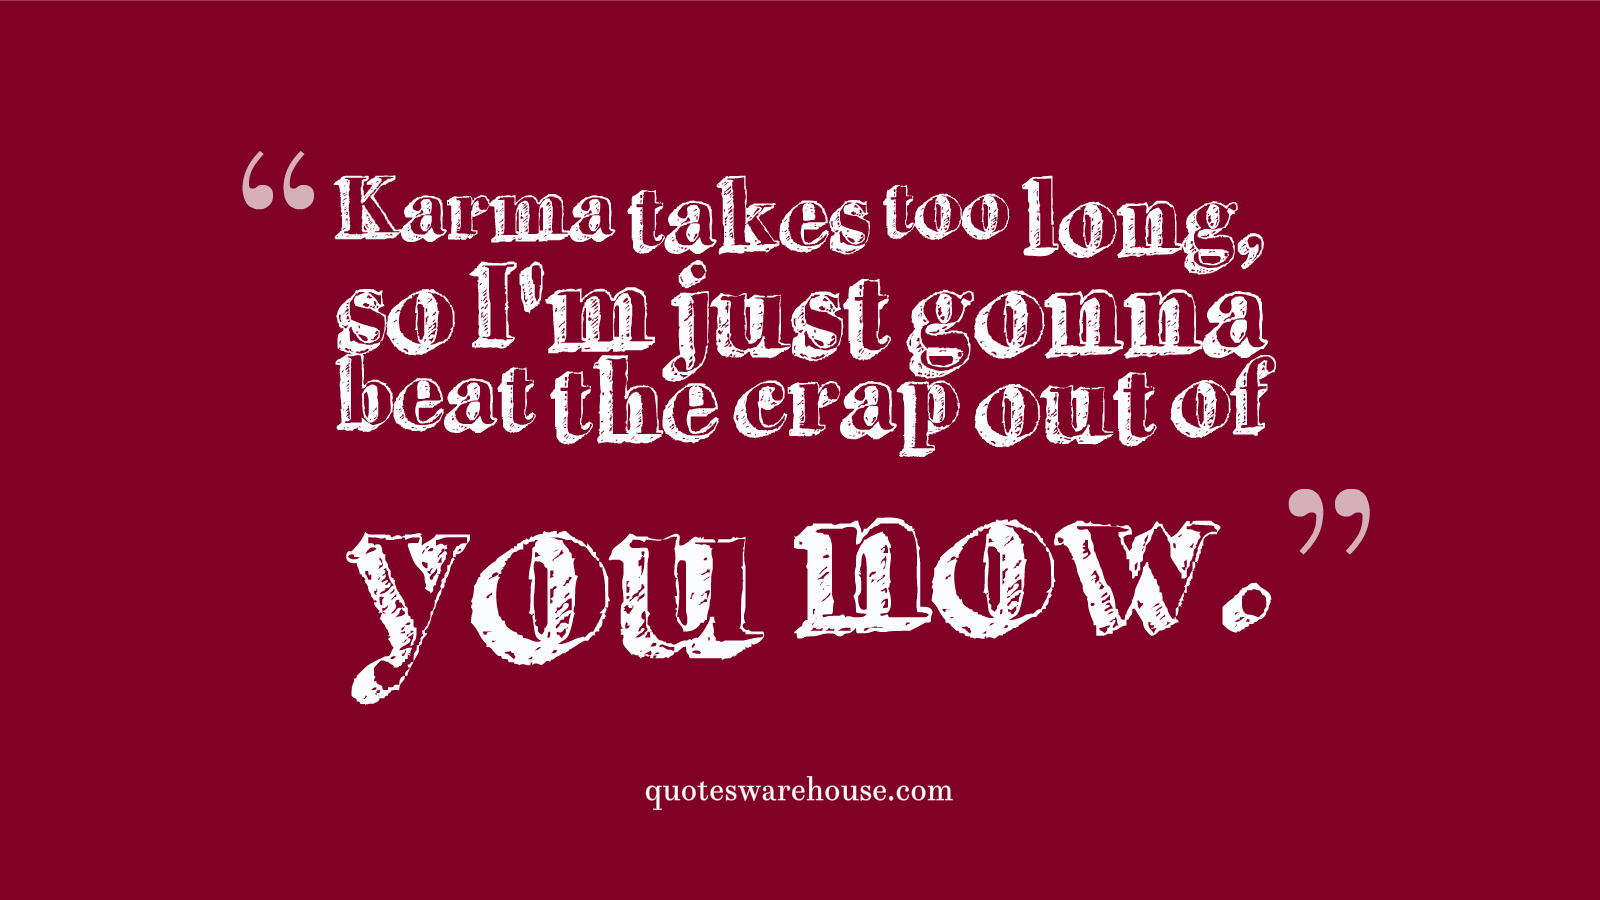 Karma Images Quotes Karma Quotes Sayings Images Page 36 Karma Quotes Funny Karma Quotes Karma Funny